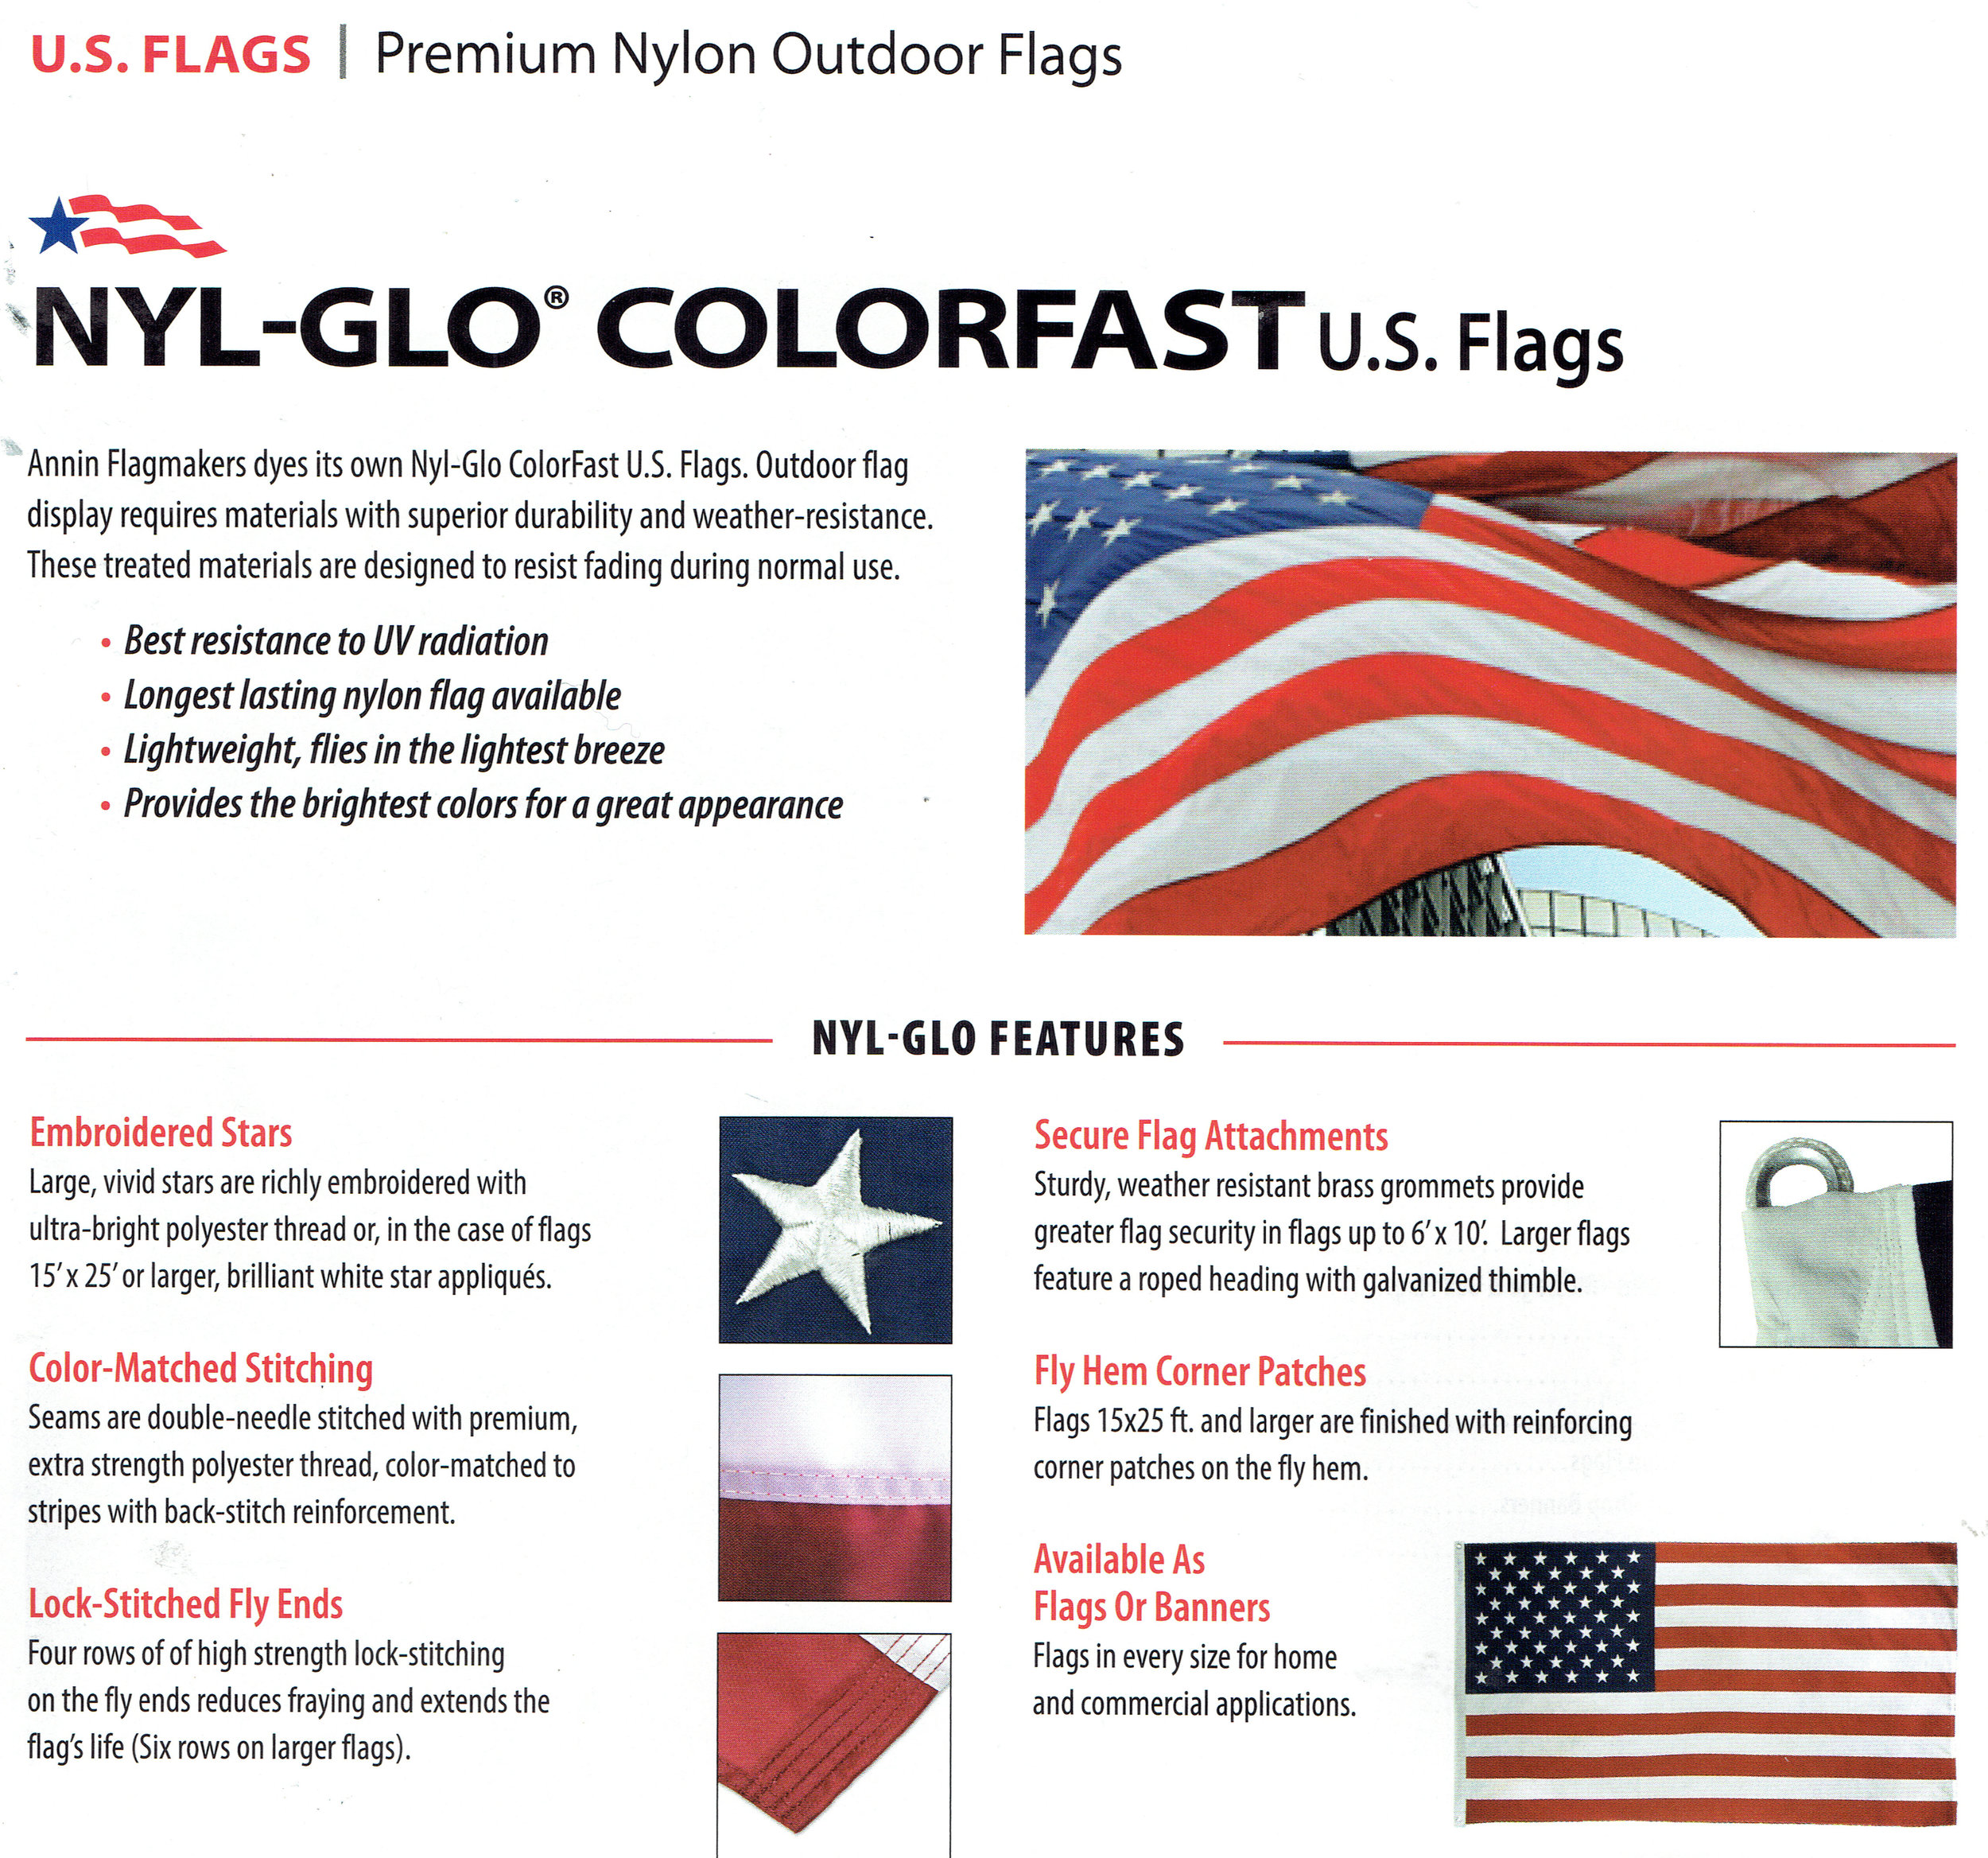 Pennant Shop - 2908 Metairie Road, Metairie, LA 70001All size Nylon flags in stock.Phone: (504) 837-8420OFFICIAL ANNIN DISTRIBUTOR